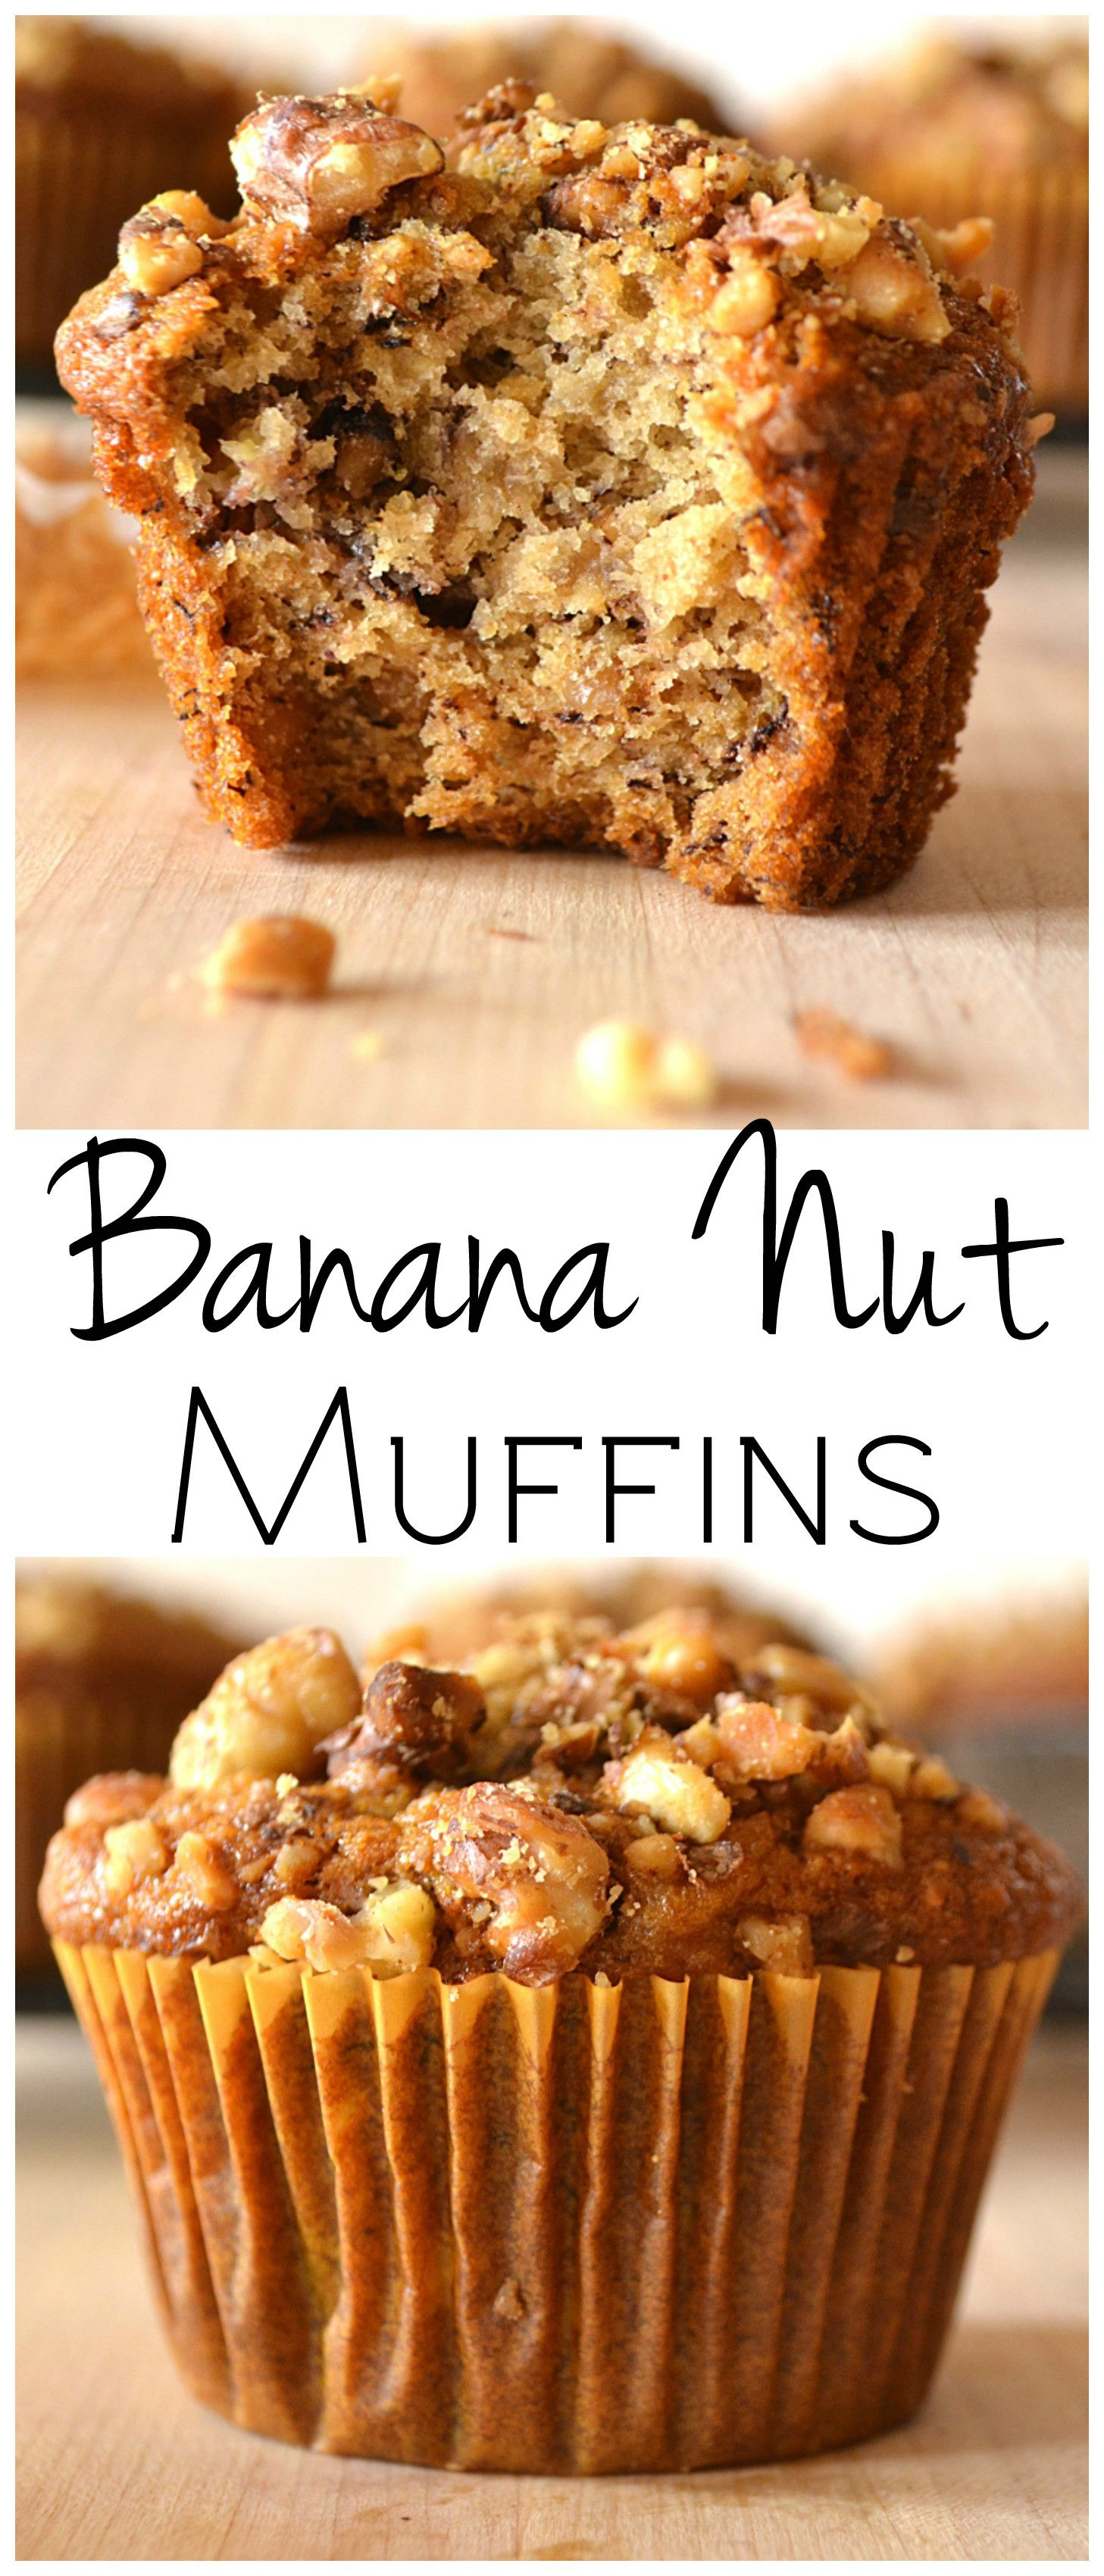 Banana Nut Muffins Recipe Banana Nut Muffins Easy Baking Banana Nut Muffin Recipe